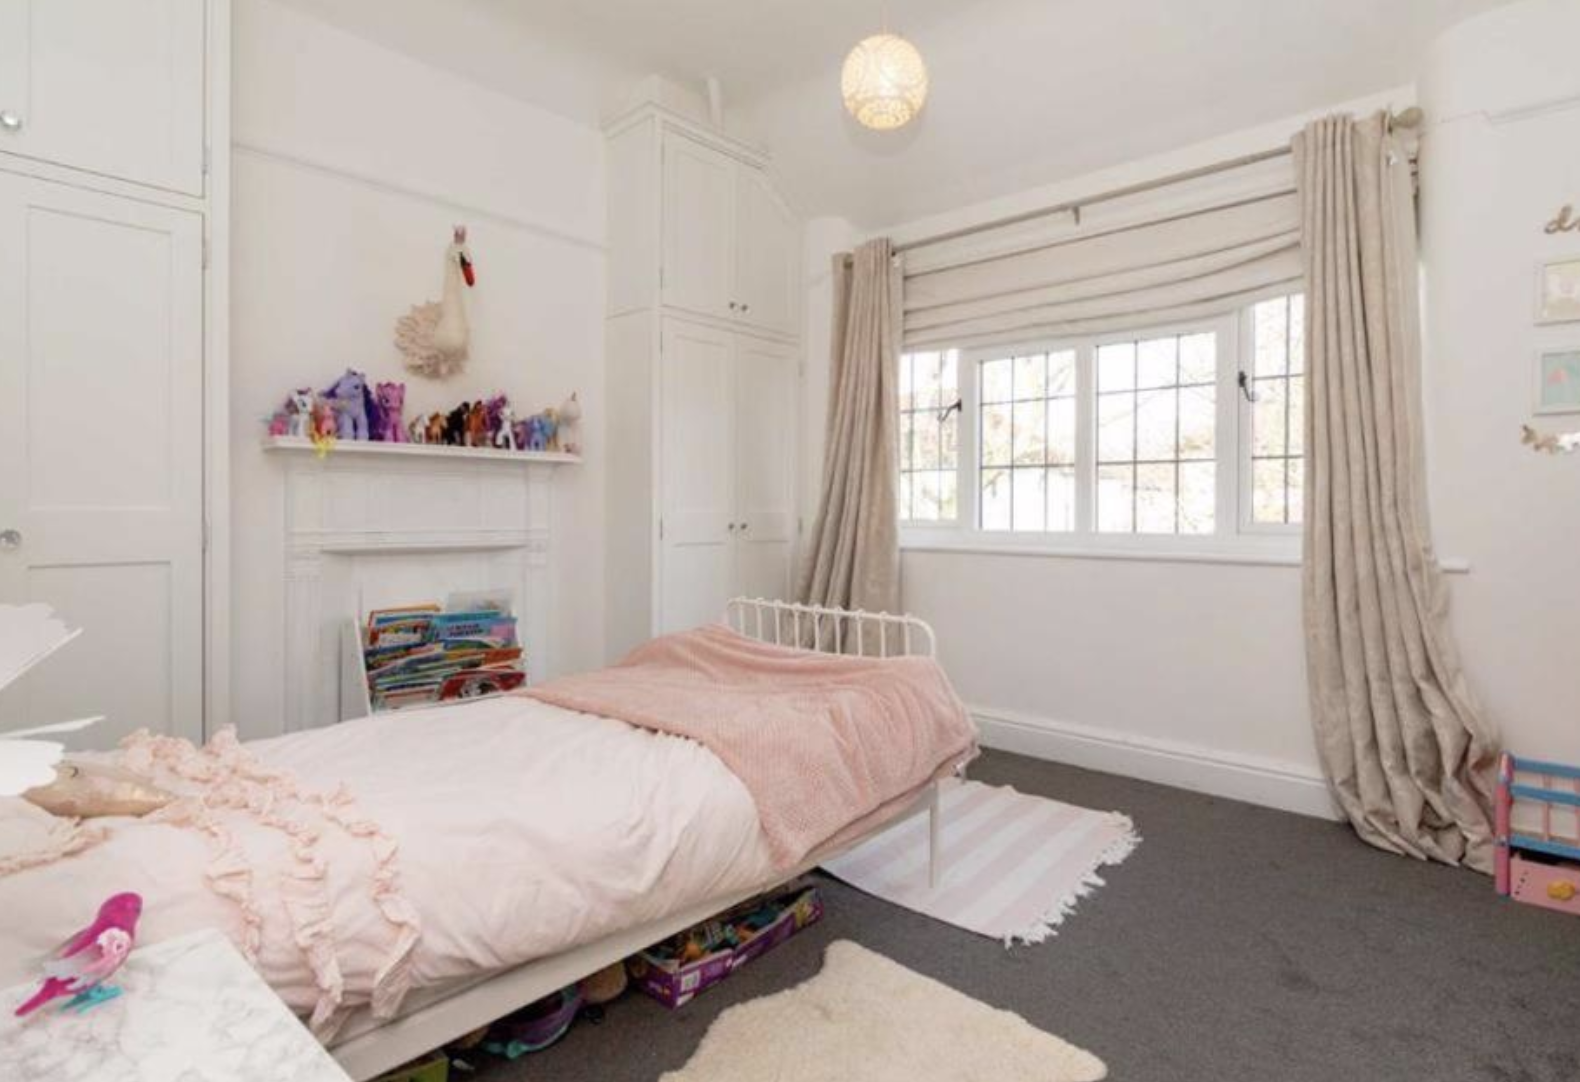 Video tour of 'perfect home' for sale in Chorlton's secret village shows what you can get for £845k, The Manc